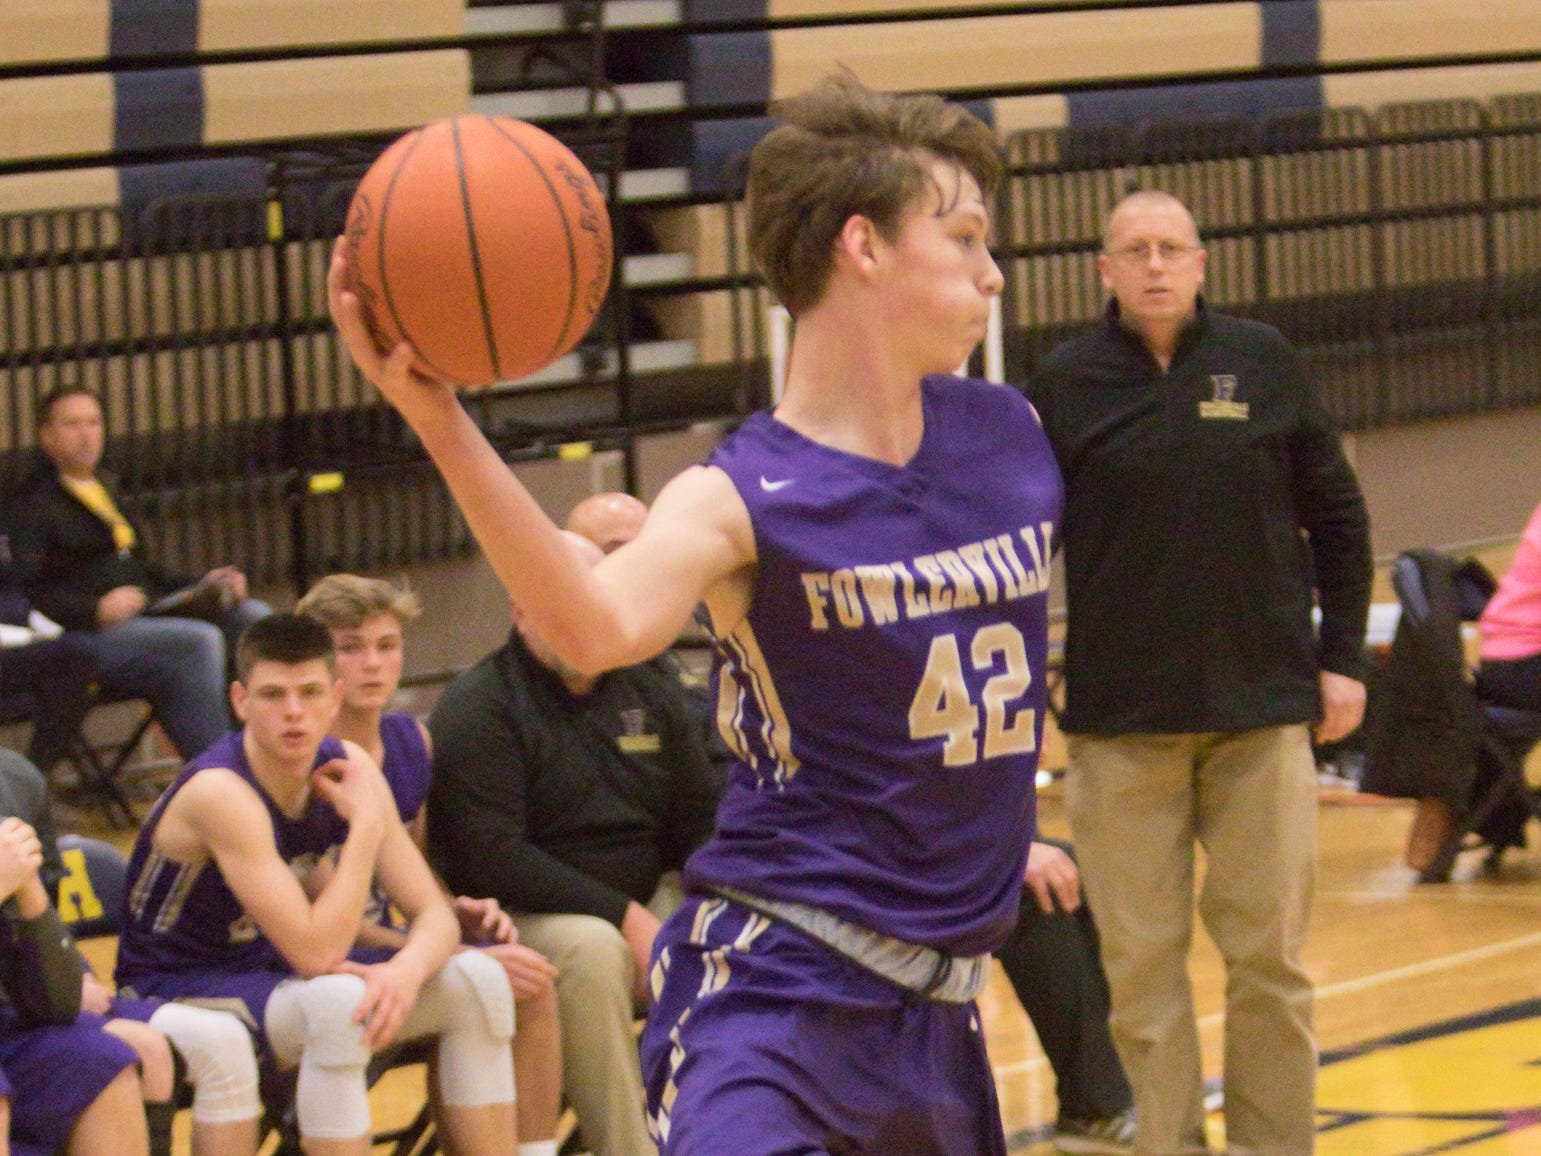 Fowlerville's Billy Hutchins passes in the fourth quarter of the tournament game against the Dreadnaughts Friday, Dec. 28, 2018.